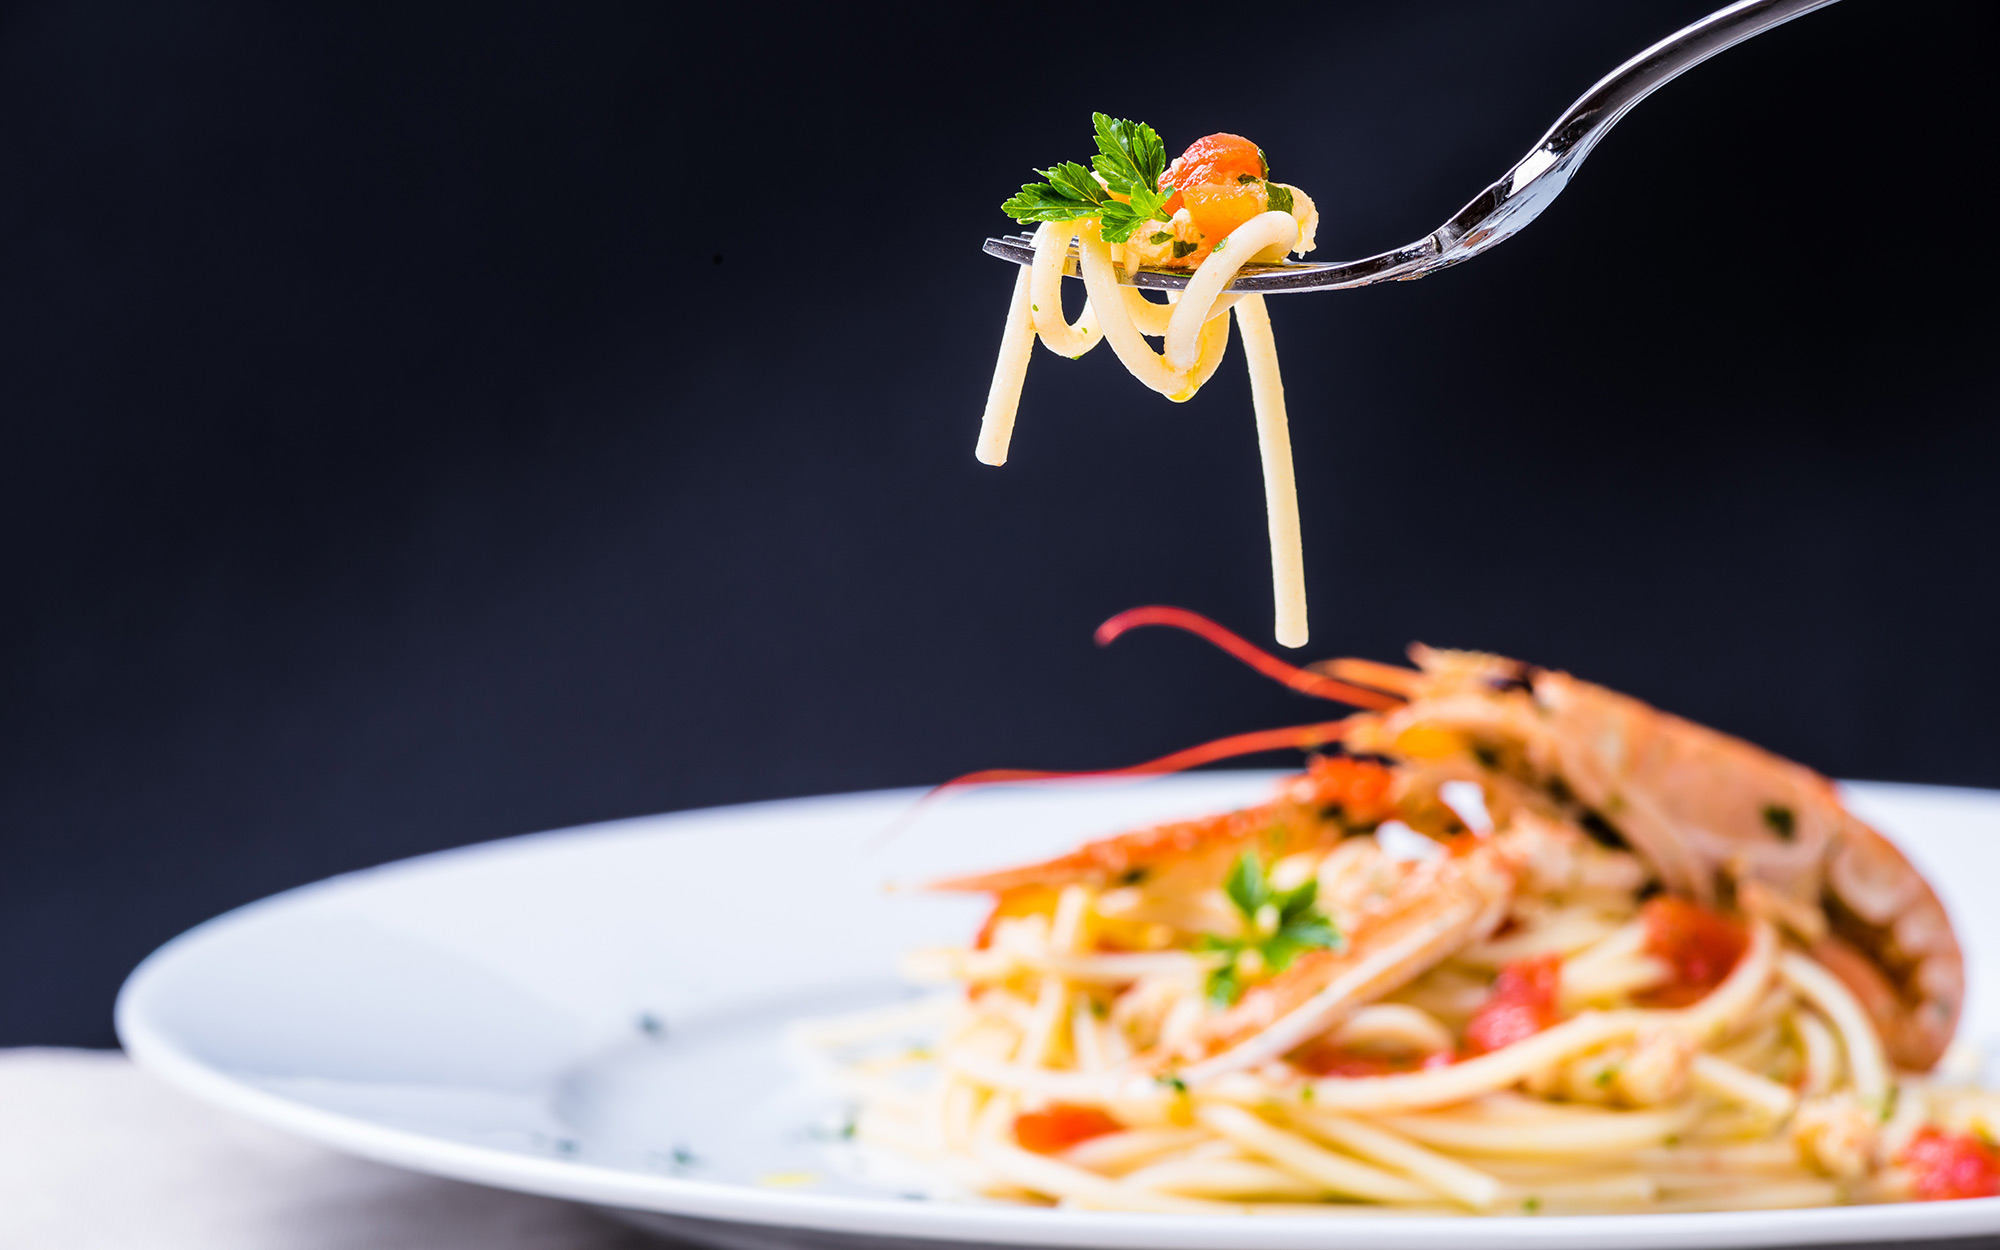 Plate with seafood spaghetti and pasta on fork.